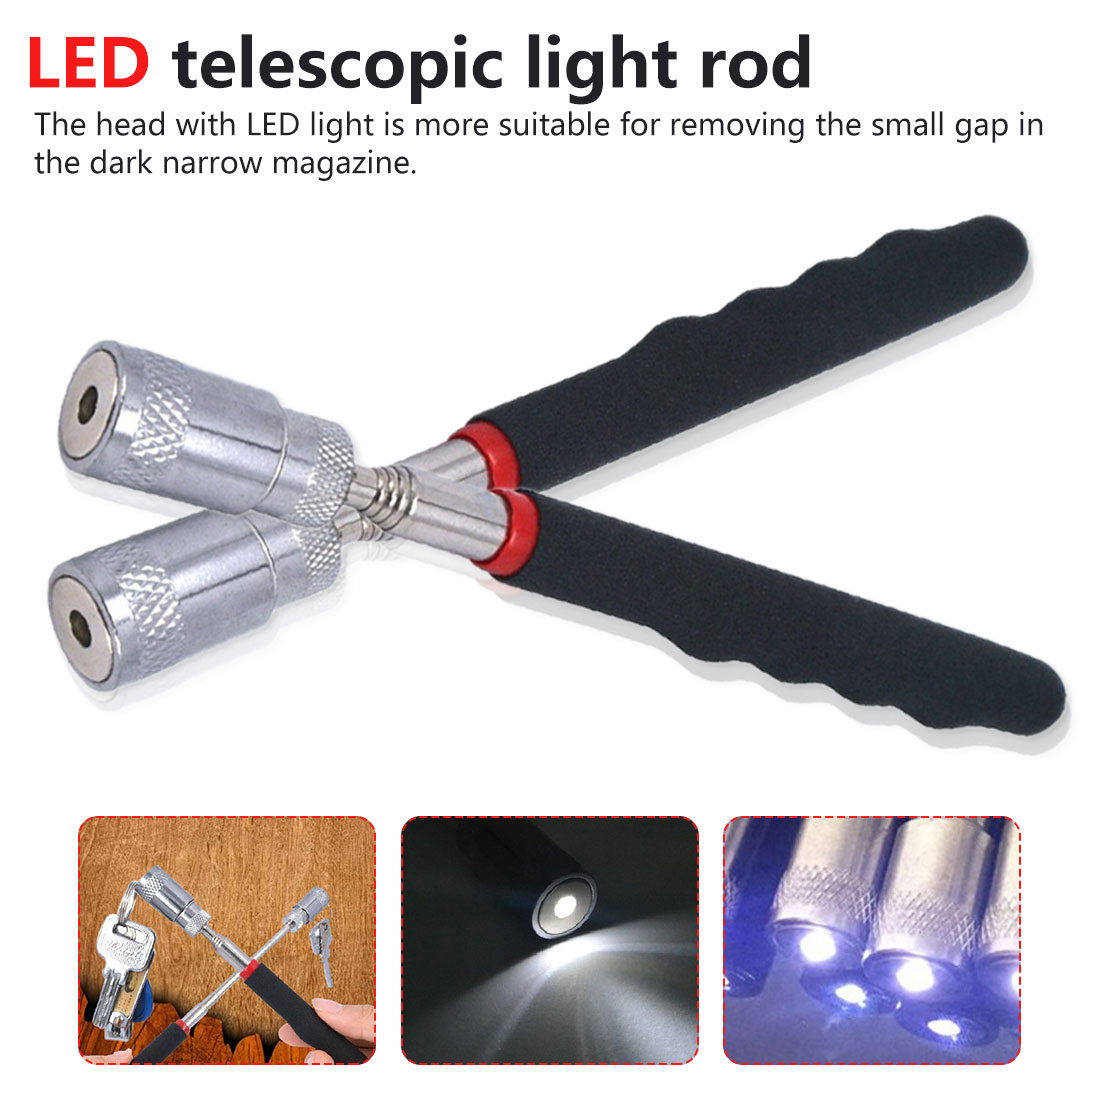 Telescopic Adjustable Hand Tools Long Reach 80.8cm LED Light Magnetic Pick-Up  With LED Light Tools Picking Up Nuts Bolts Magnet